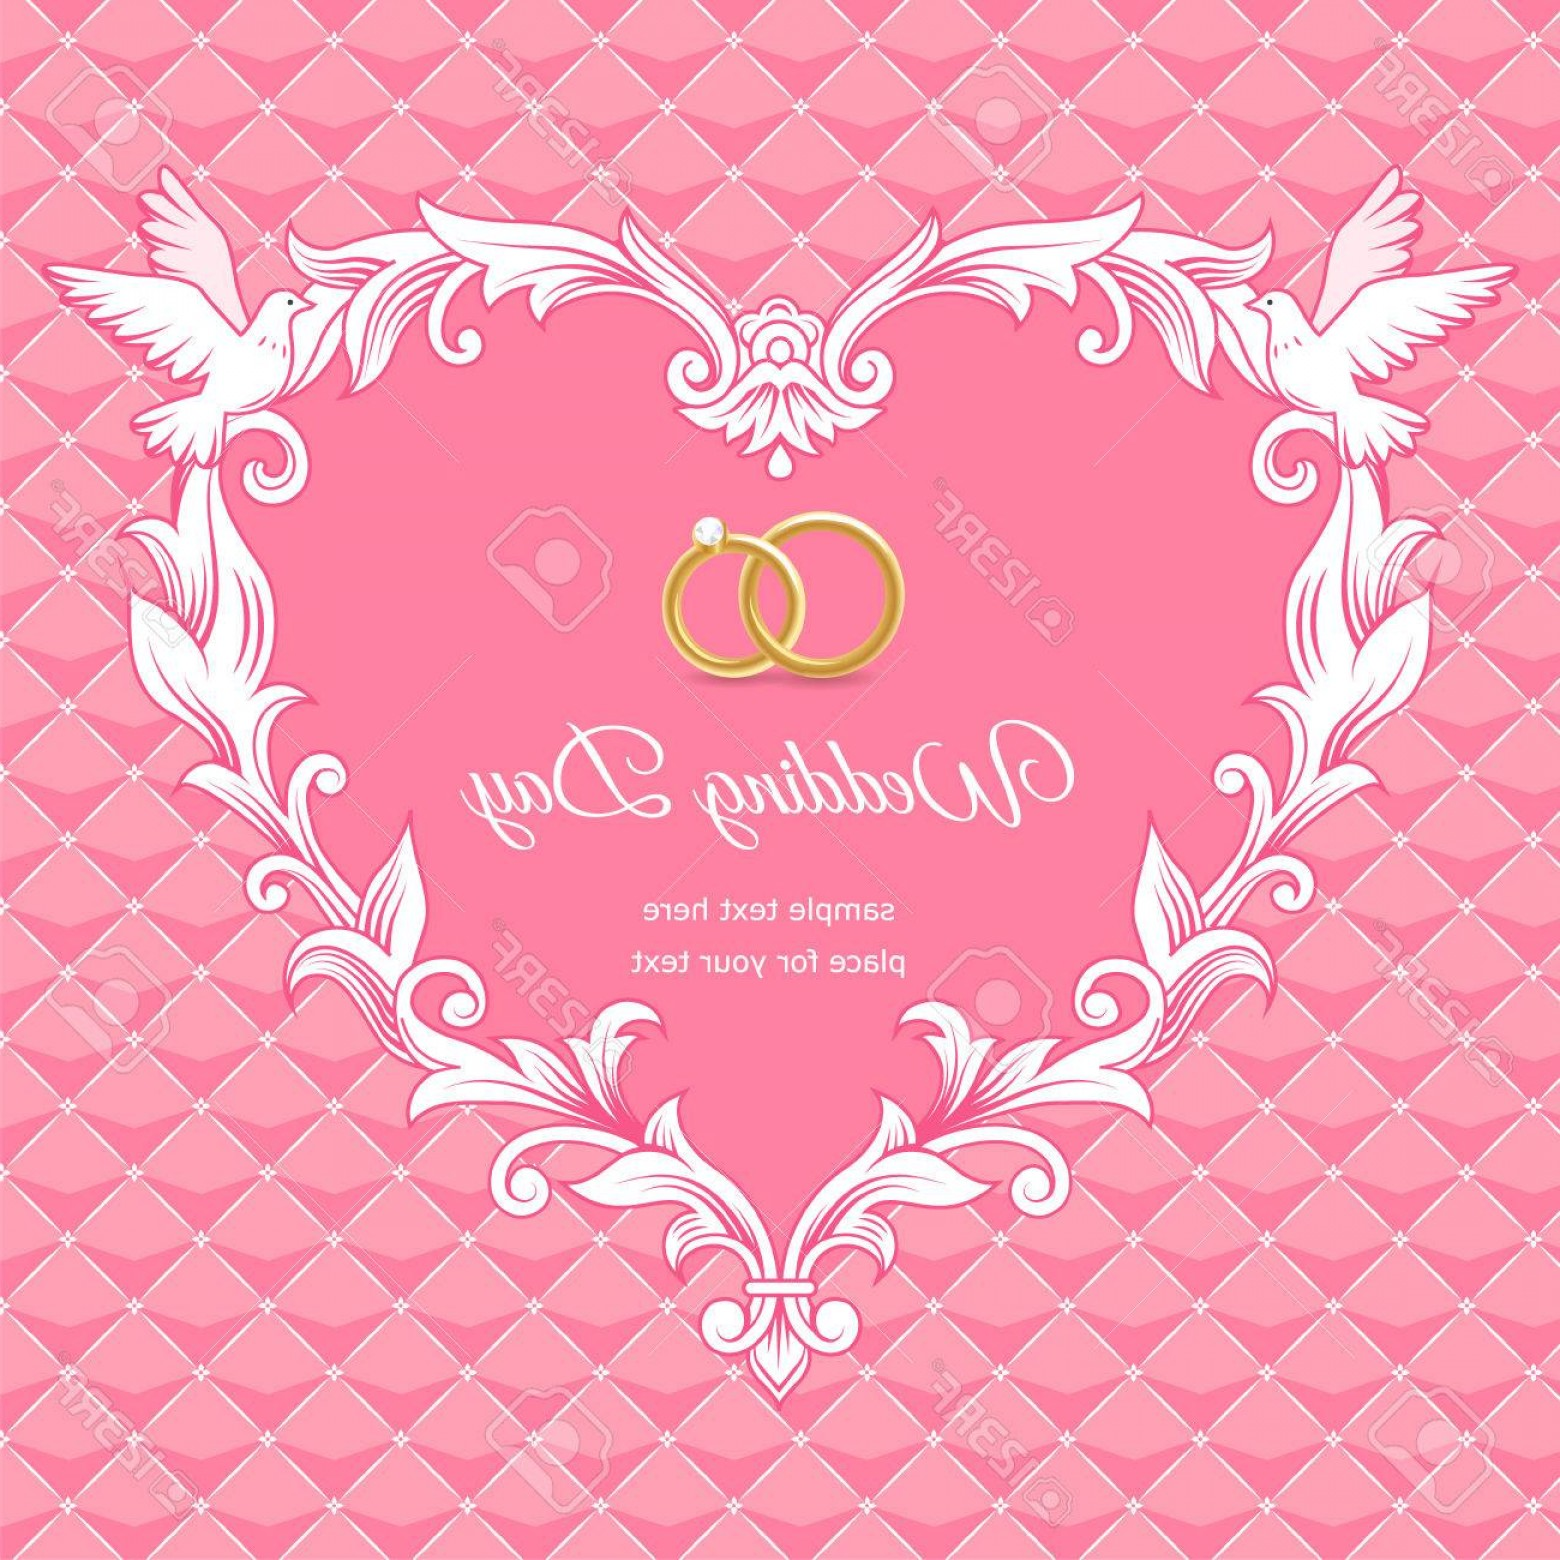 Heart Card Vector: Photostock Vector Template Of Wedding Card Frame Heart Shaped On Pink Background